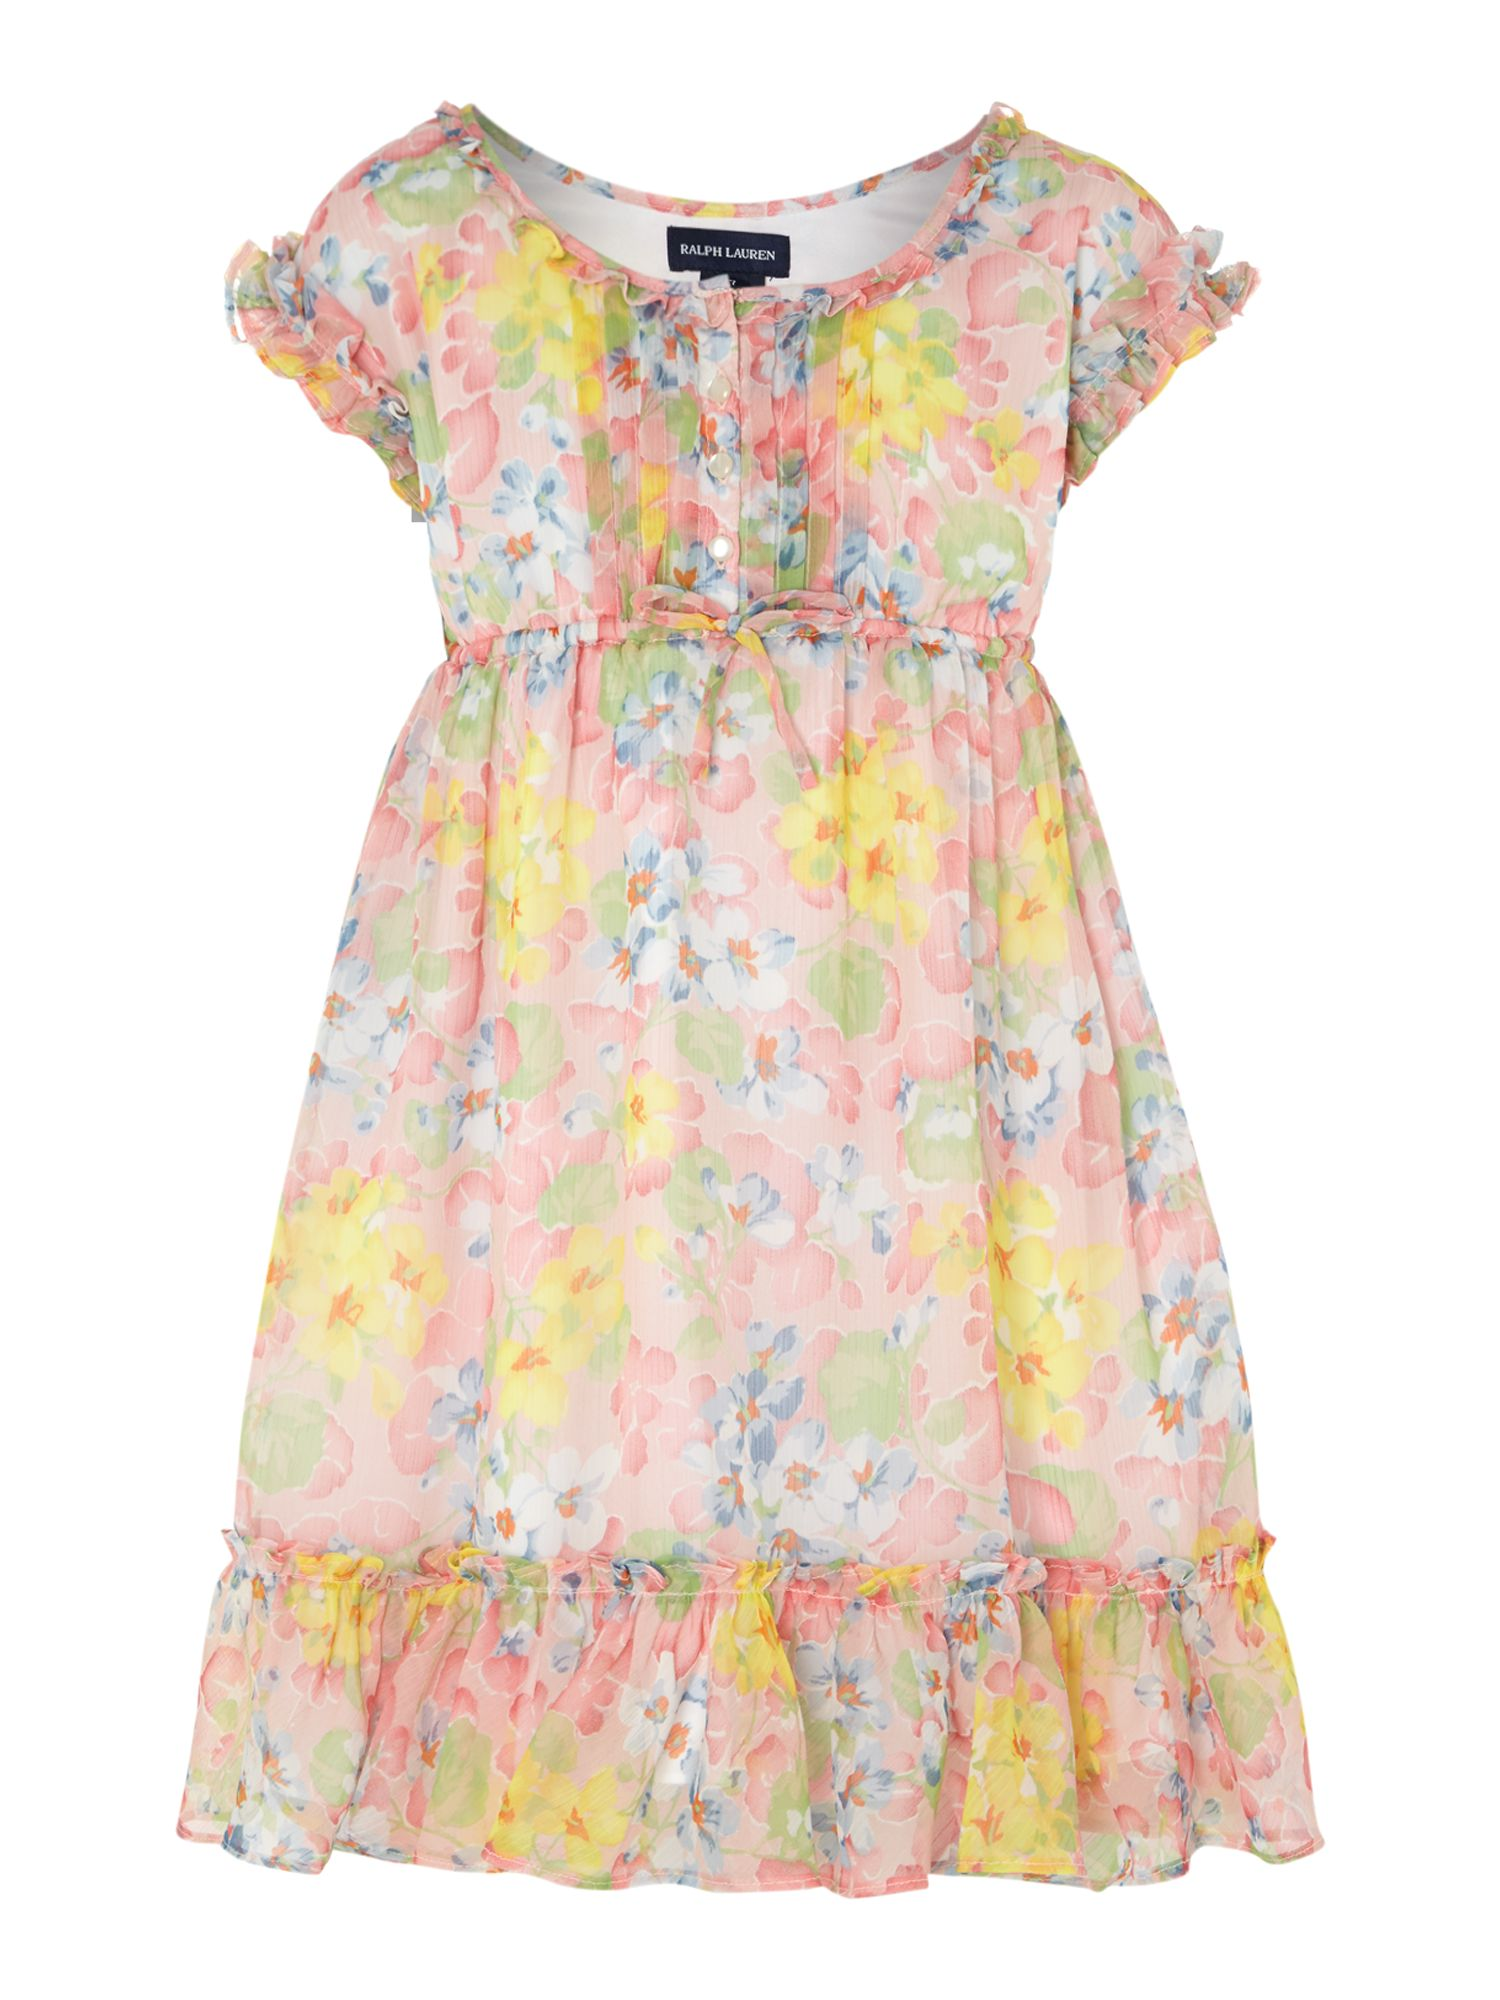 Girls floral tiered dress